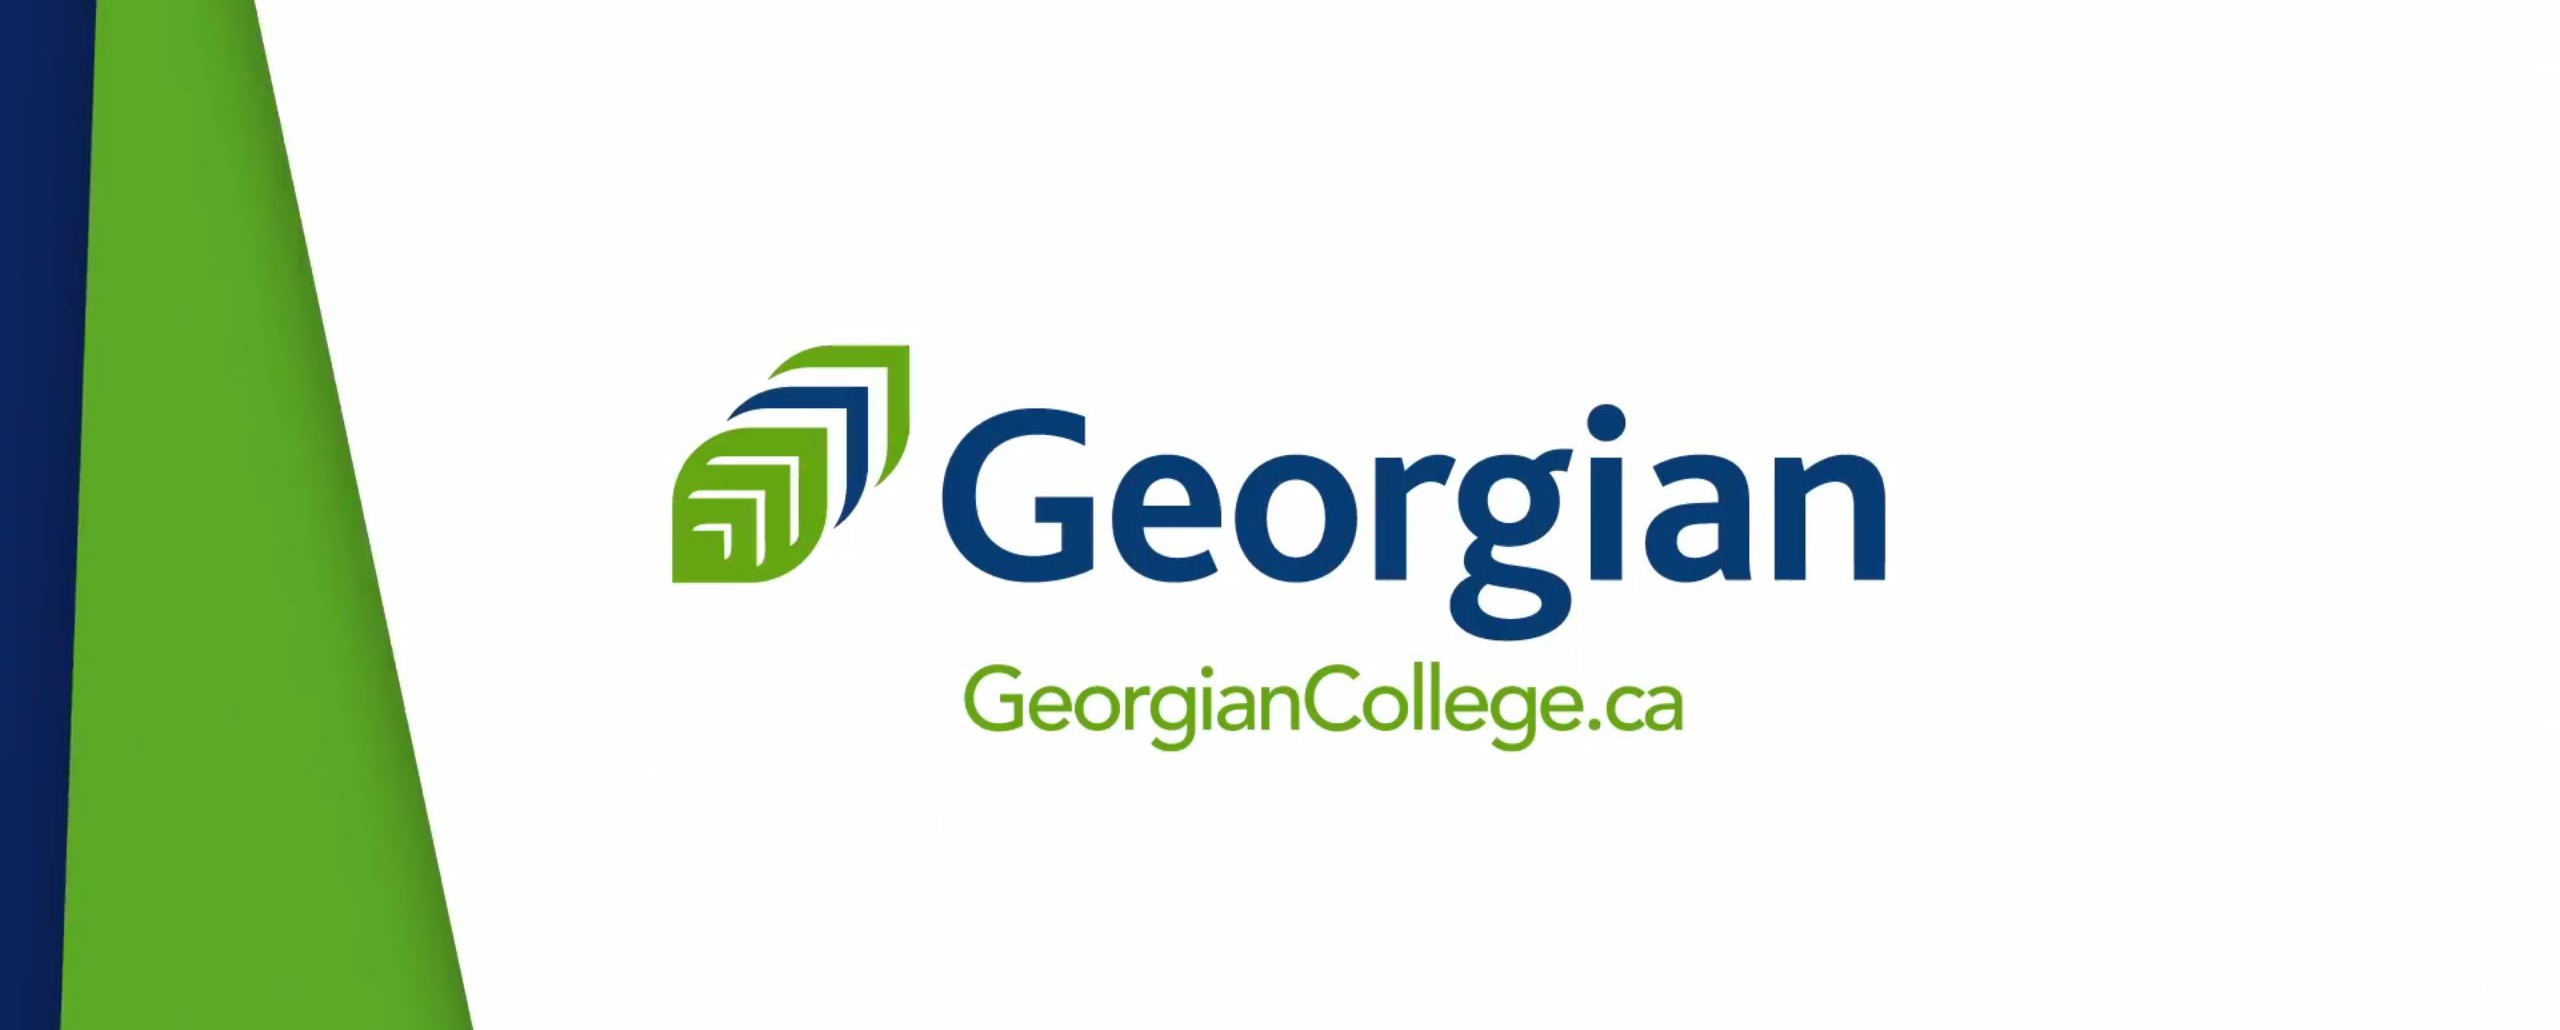 Marketing-New-brand-slider-Georgian-College-201408